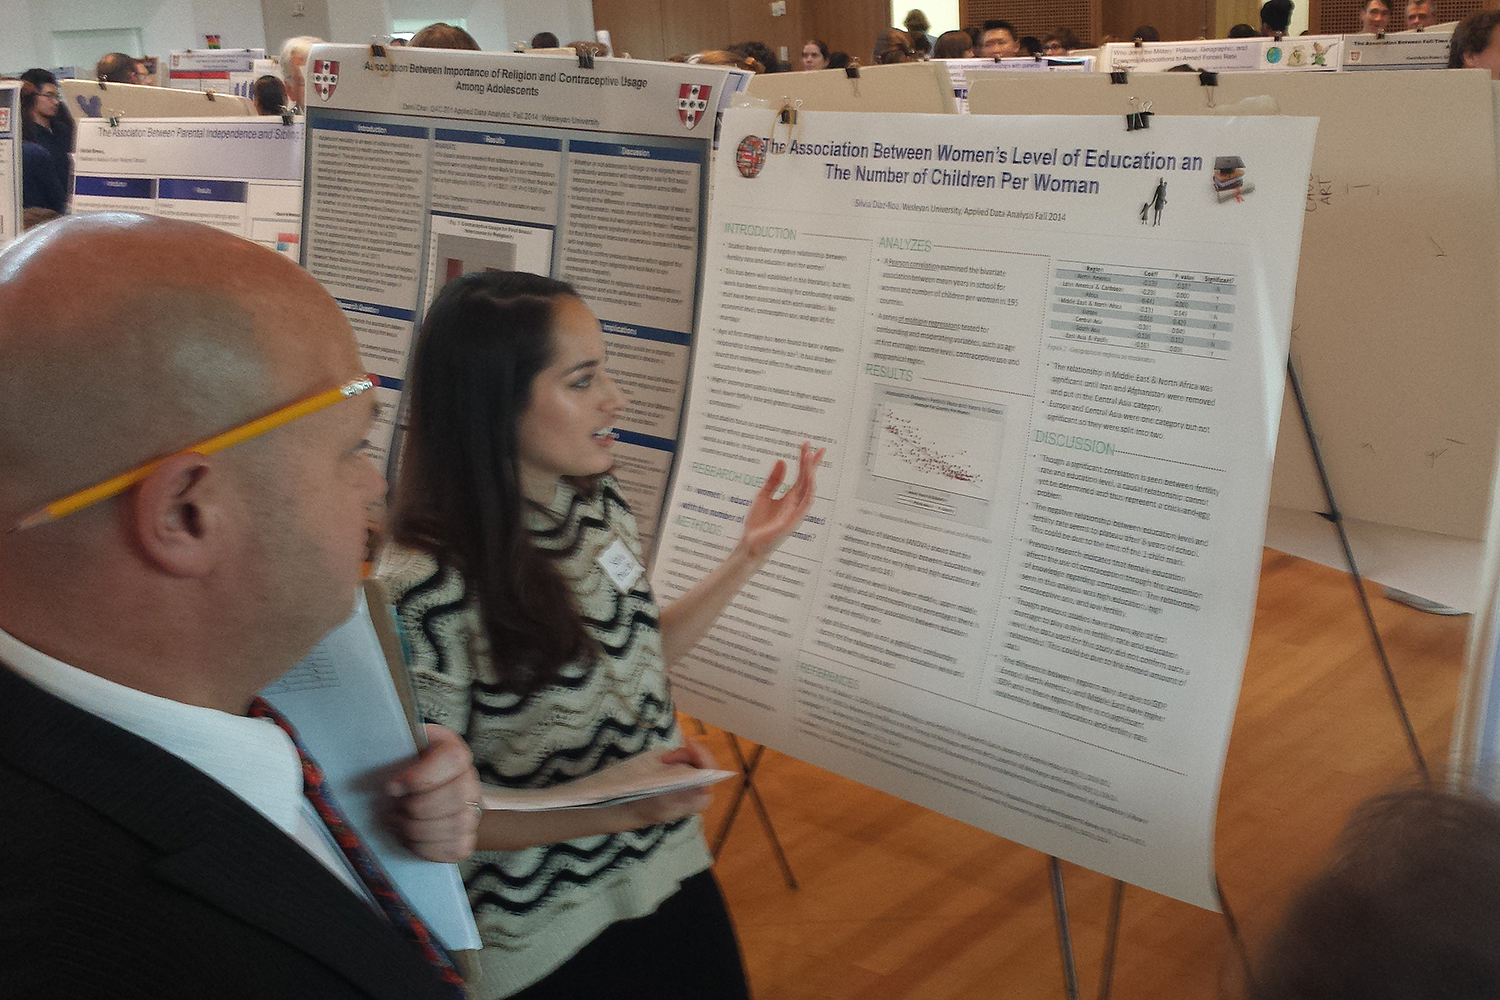 Silvia Diaz-Roa '15 presented her research at the poster session.